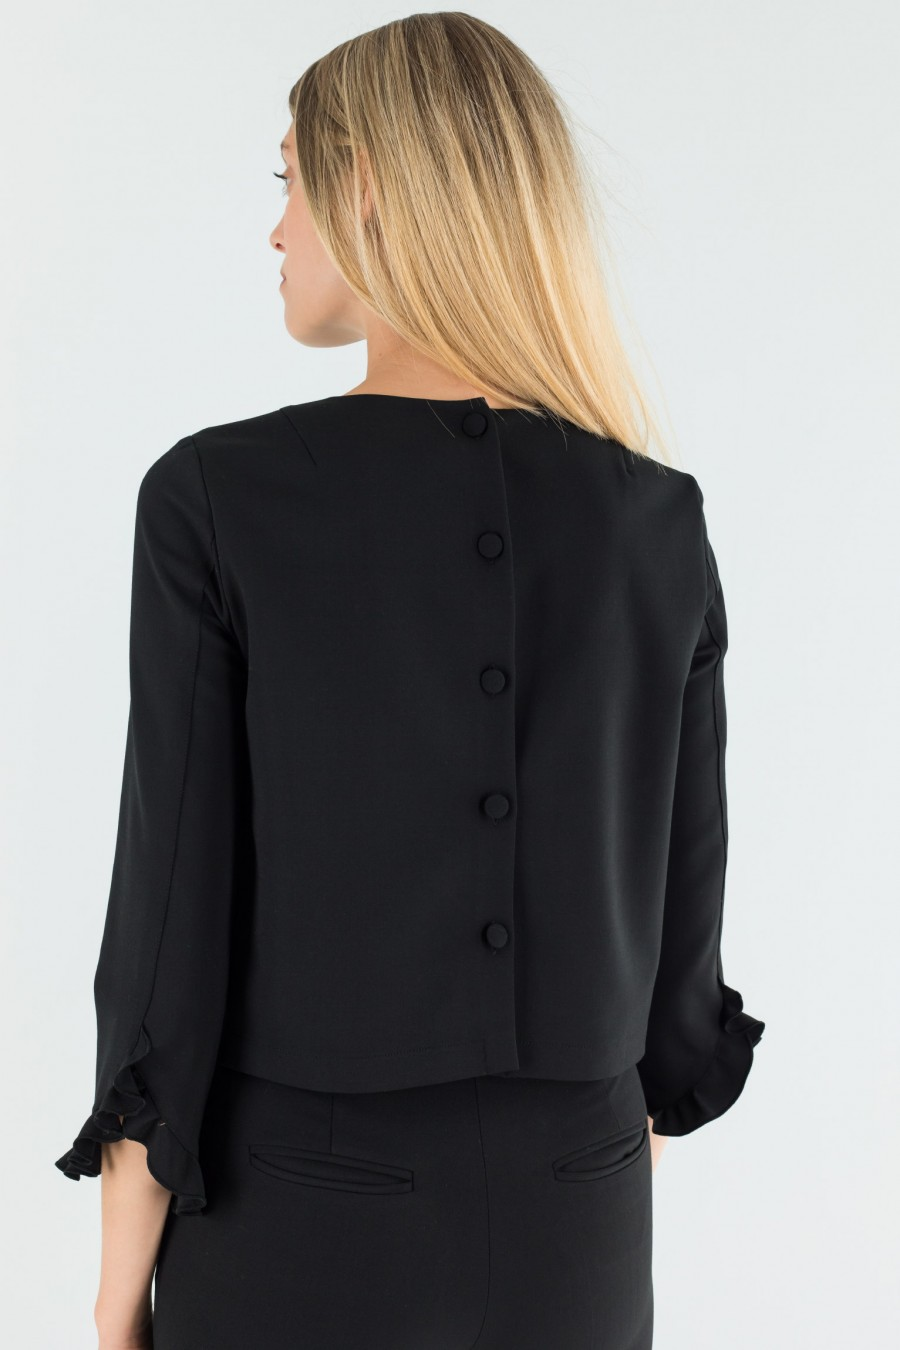 Black top with ruches